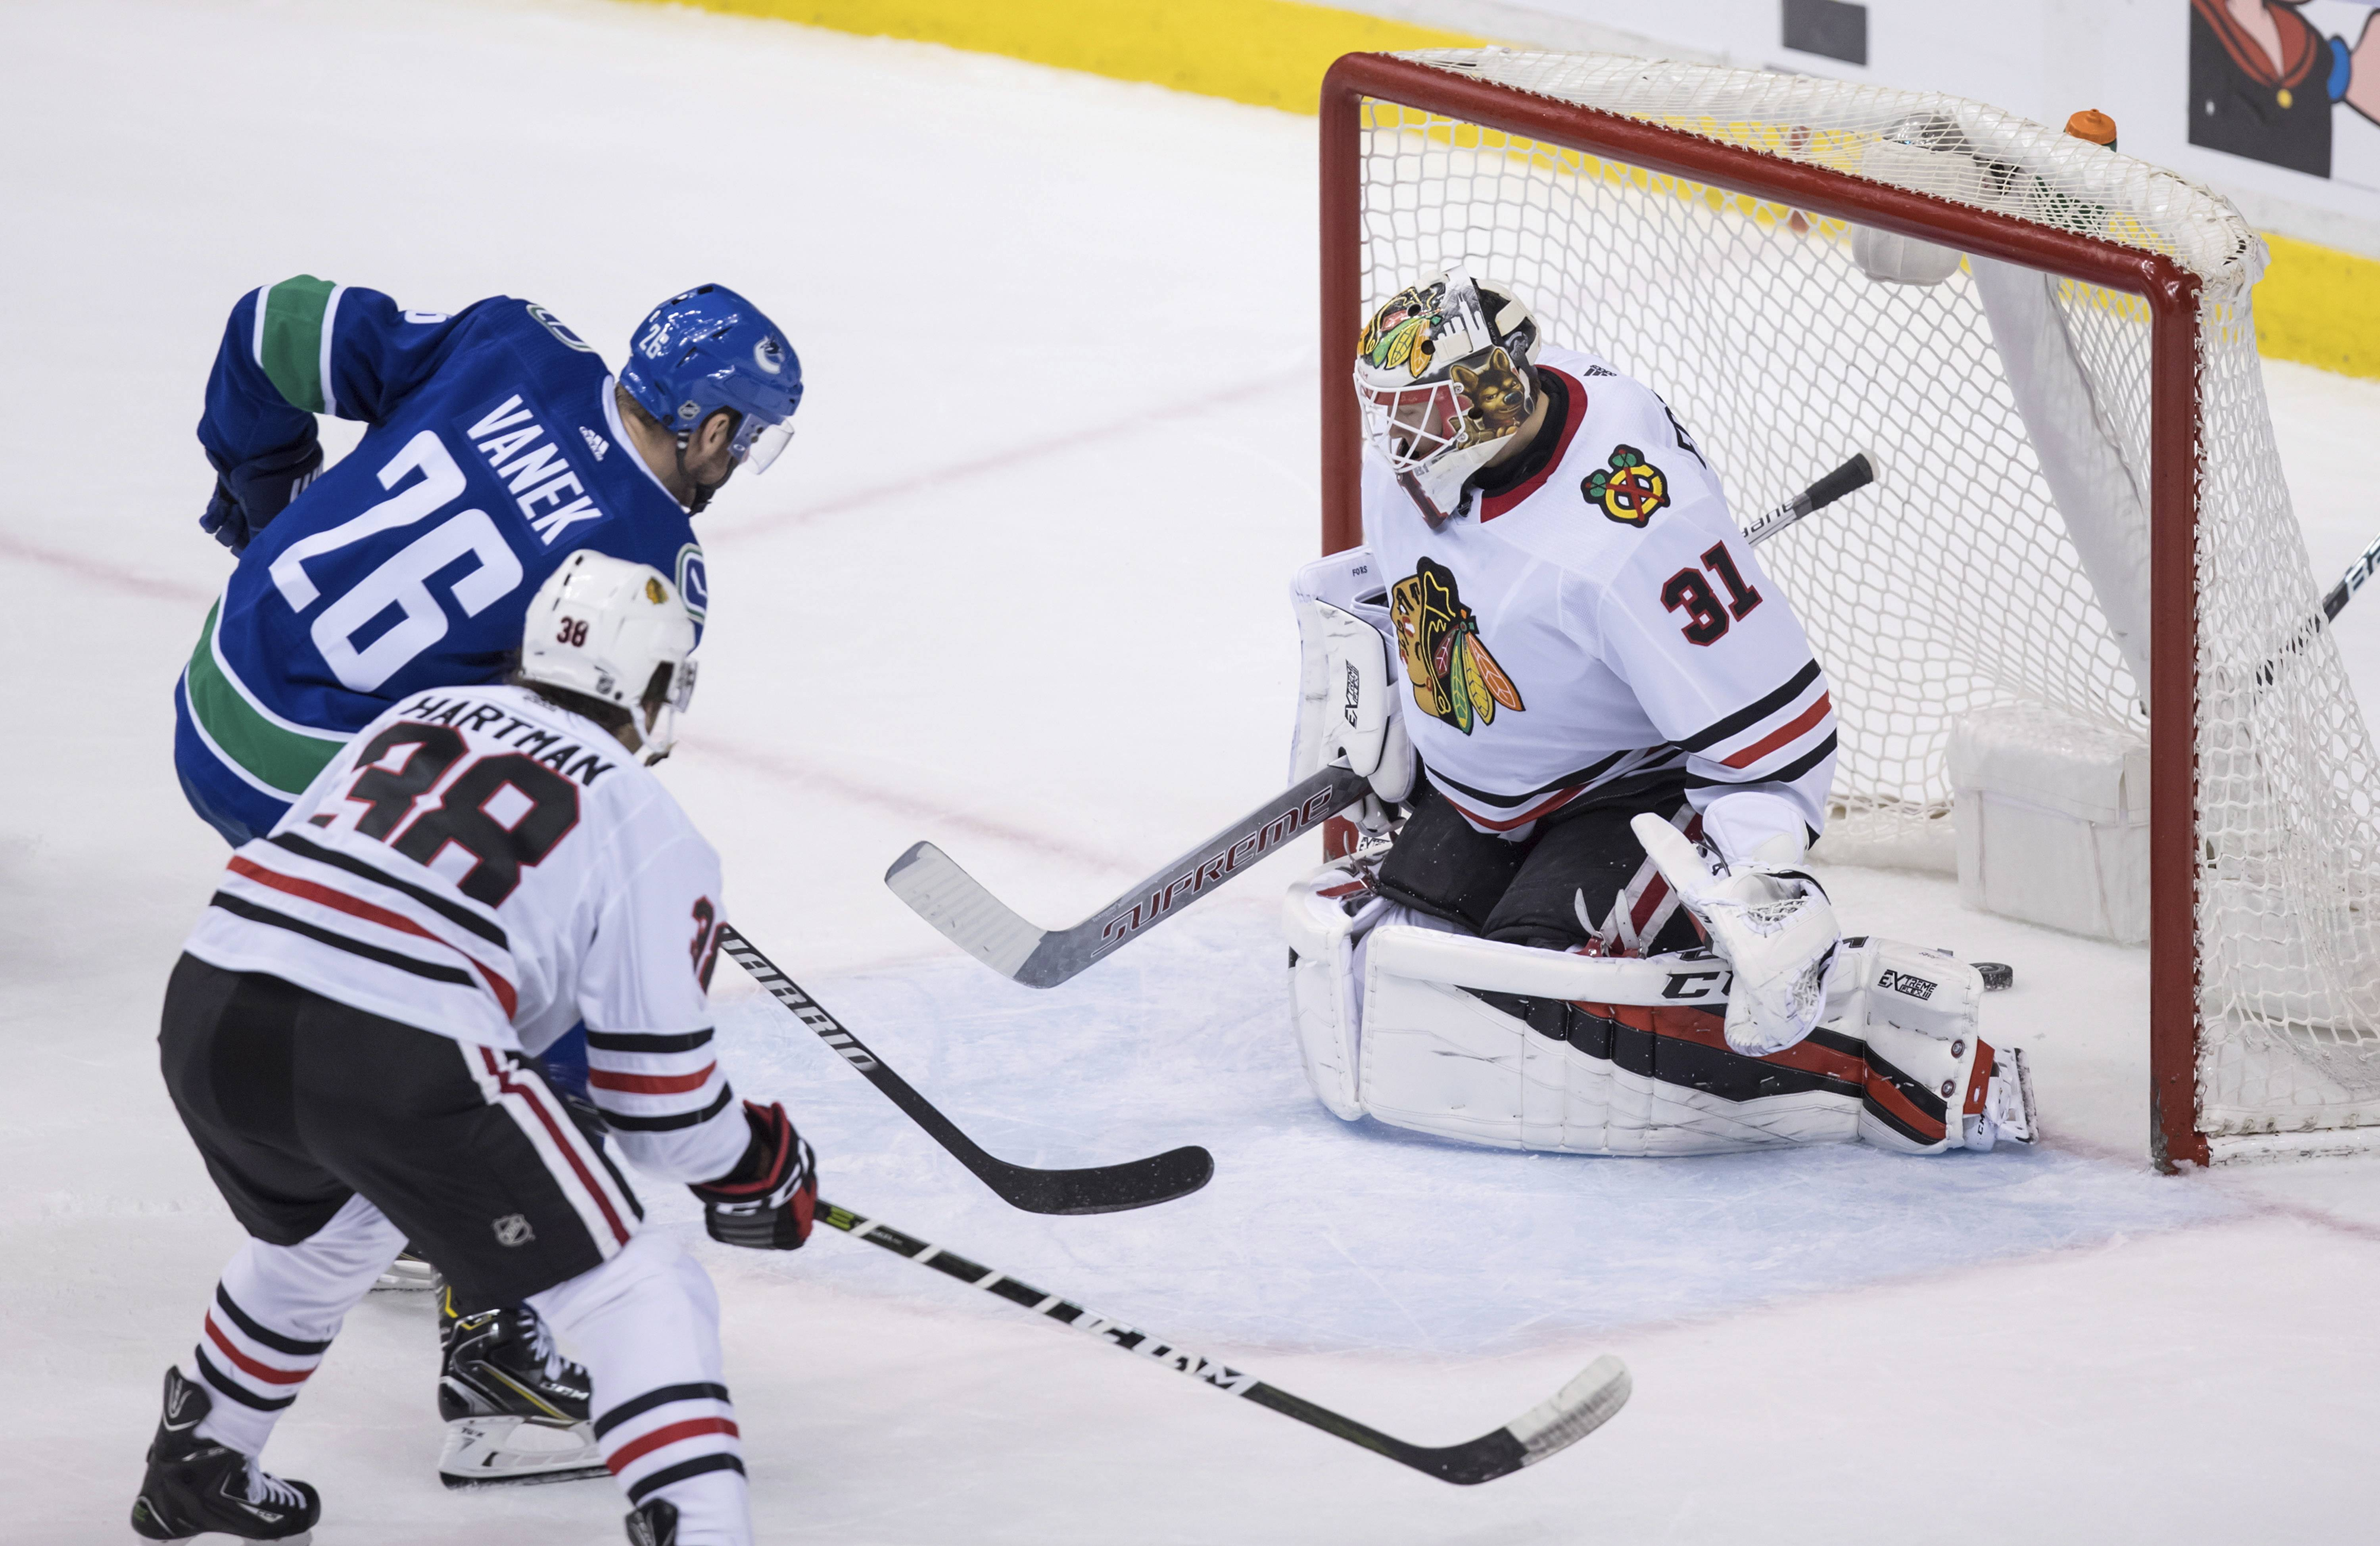 Vancouver Canucks' Thomas Vanek (26), of Austria, scores against Chicago Blackhawks goalie Anton Forsberg, right, of Sweden, as Ryan Hartman watches during the second period of an NHL hockey game Thursday, Dec. 28, 2017, in Vancouver, British Columbia. (Darryl Dyck/The Canadian Press via AP)